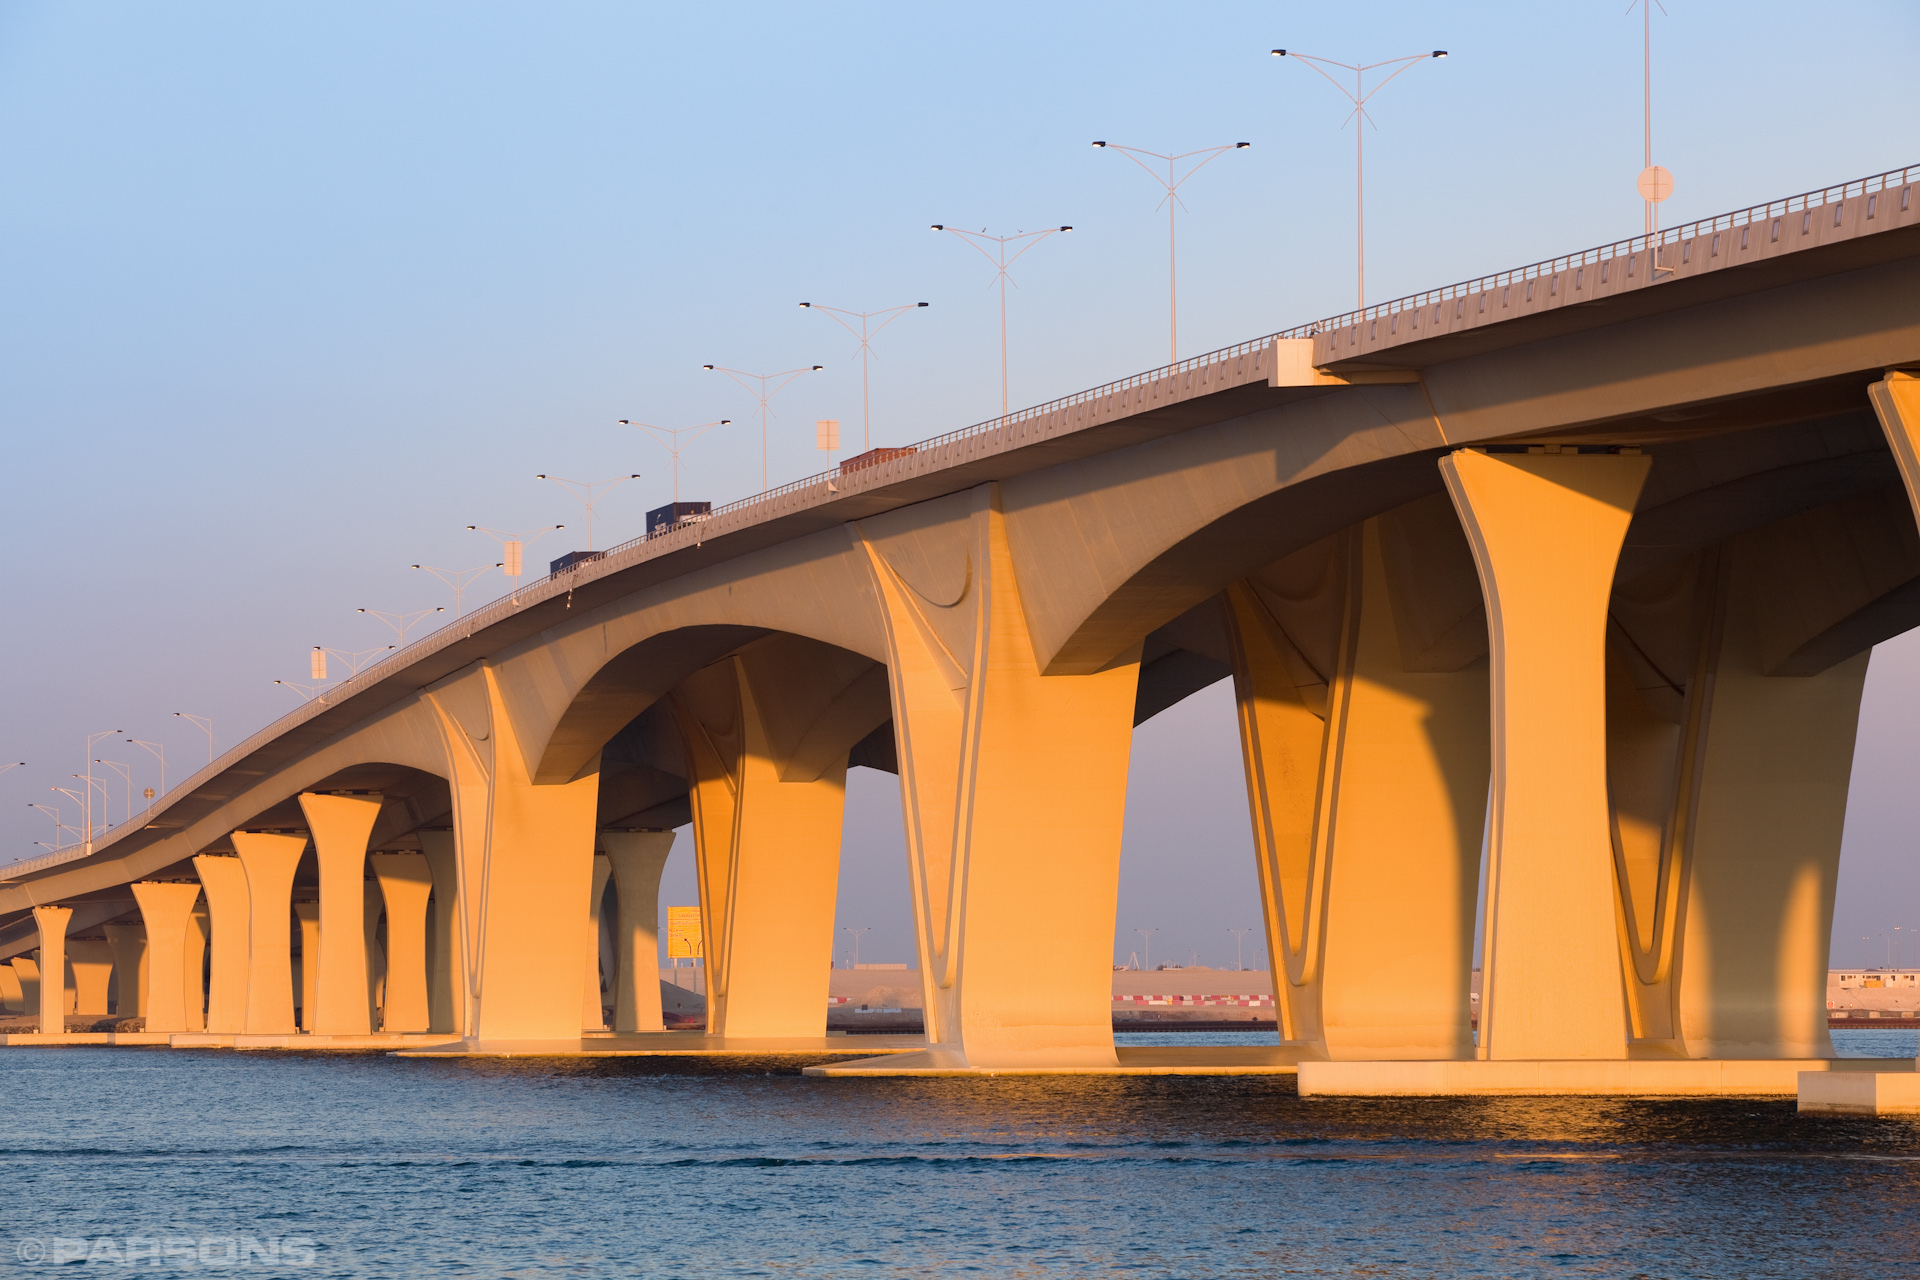 Civil-Engineering-Saadiyat-Bridge-Abu-Dhabi-UAE.JPG